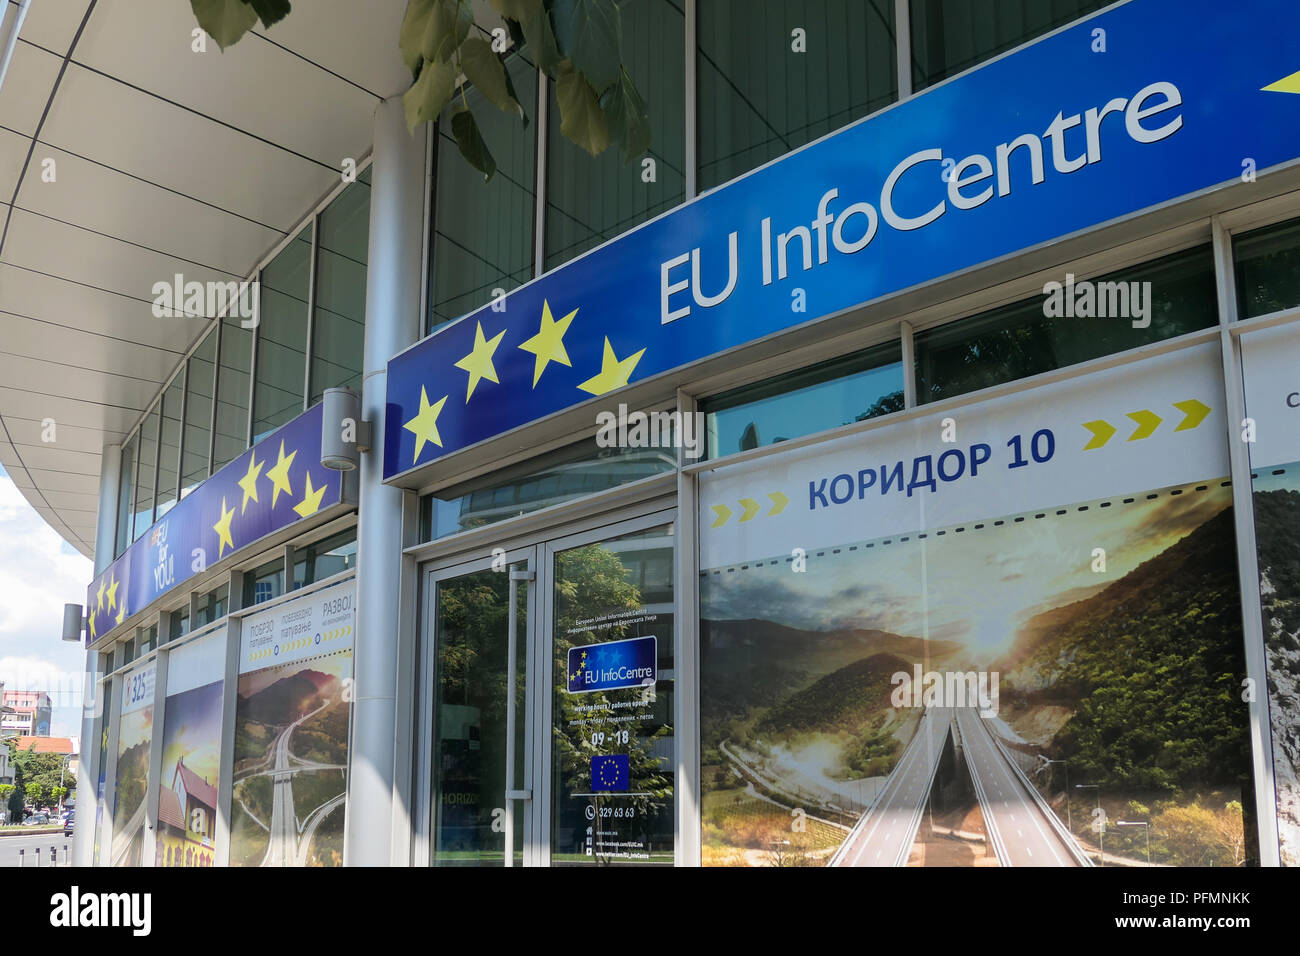 EU-Info Center, Skopje, Mazedonien Stockbild